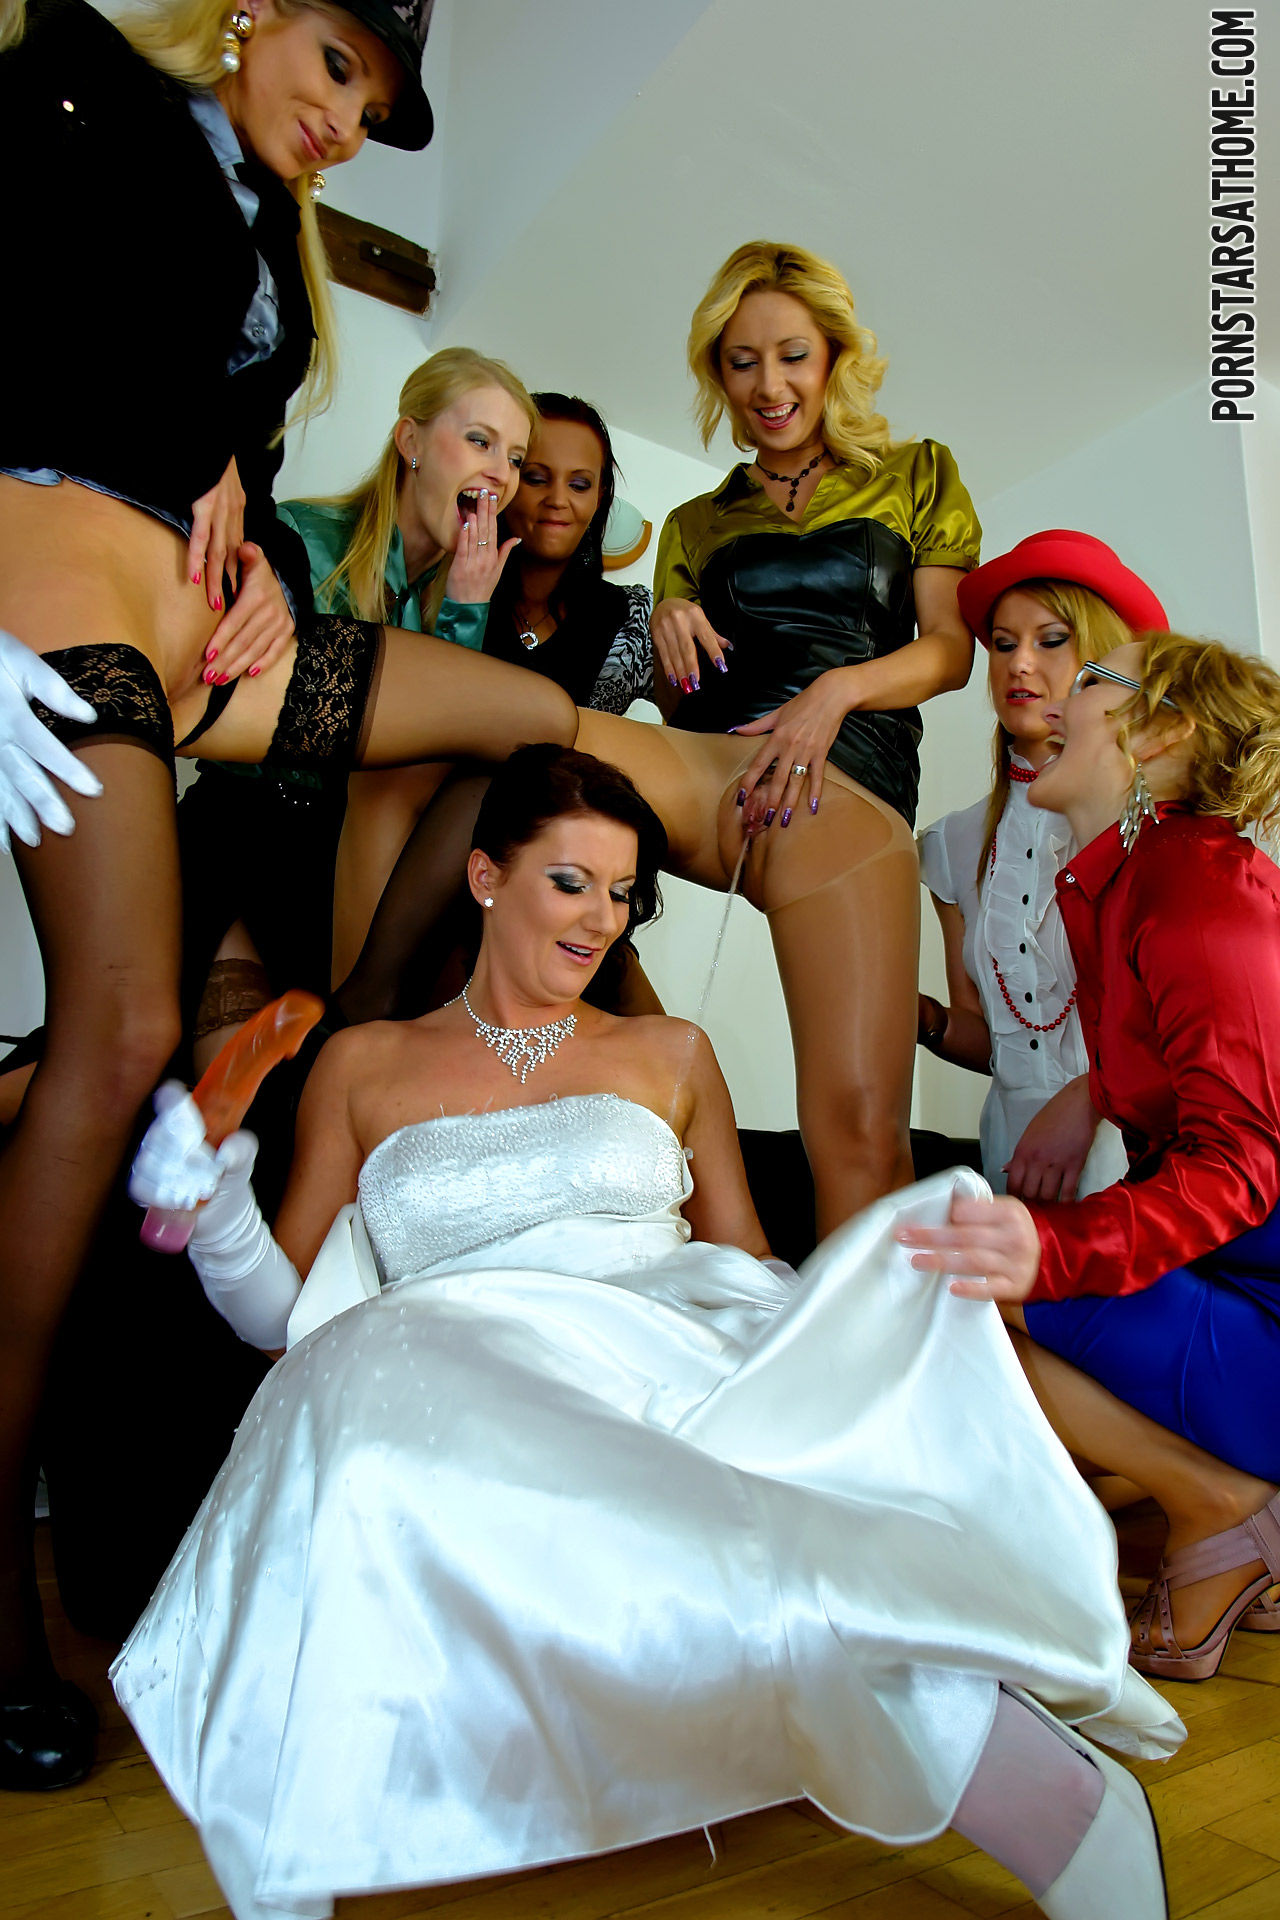 group lesbians squirting automatic blowjob